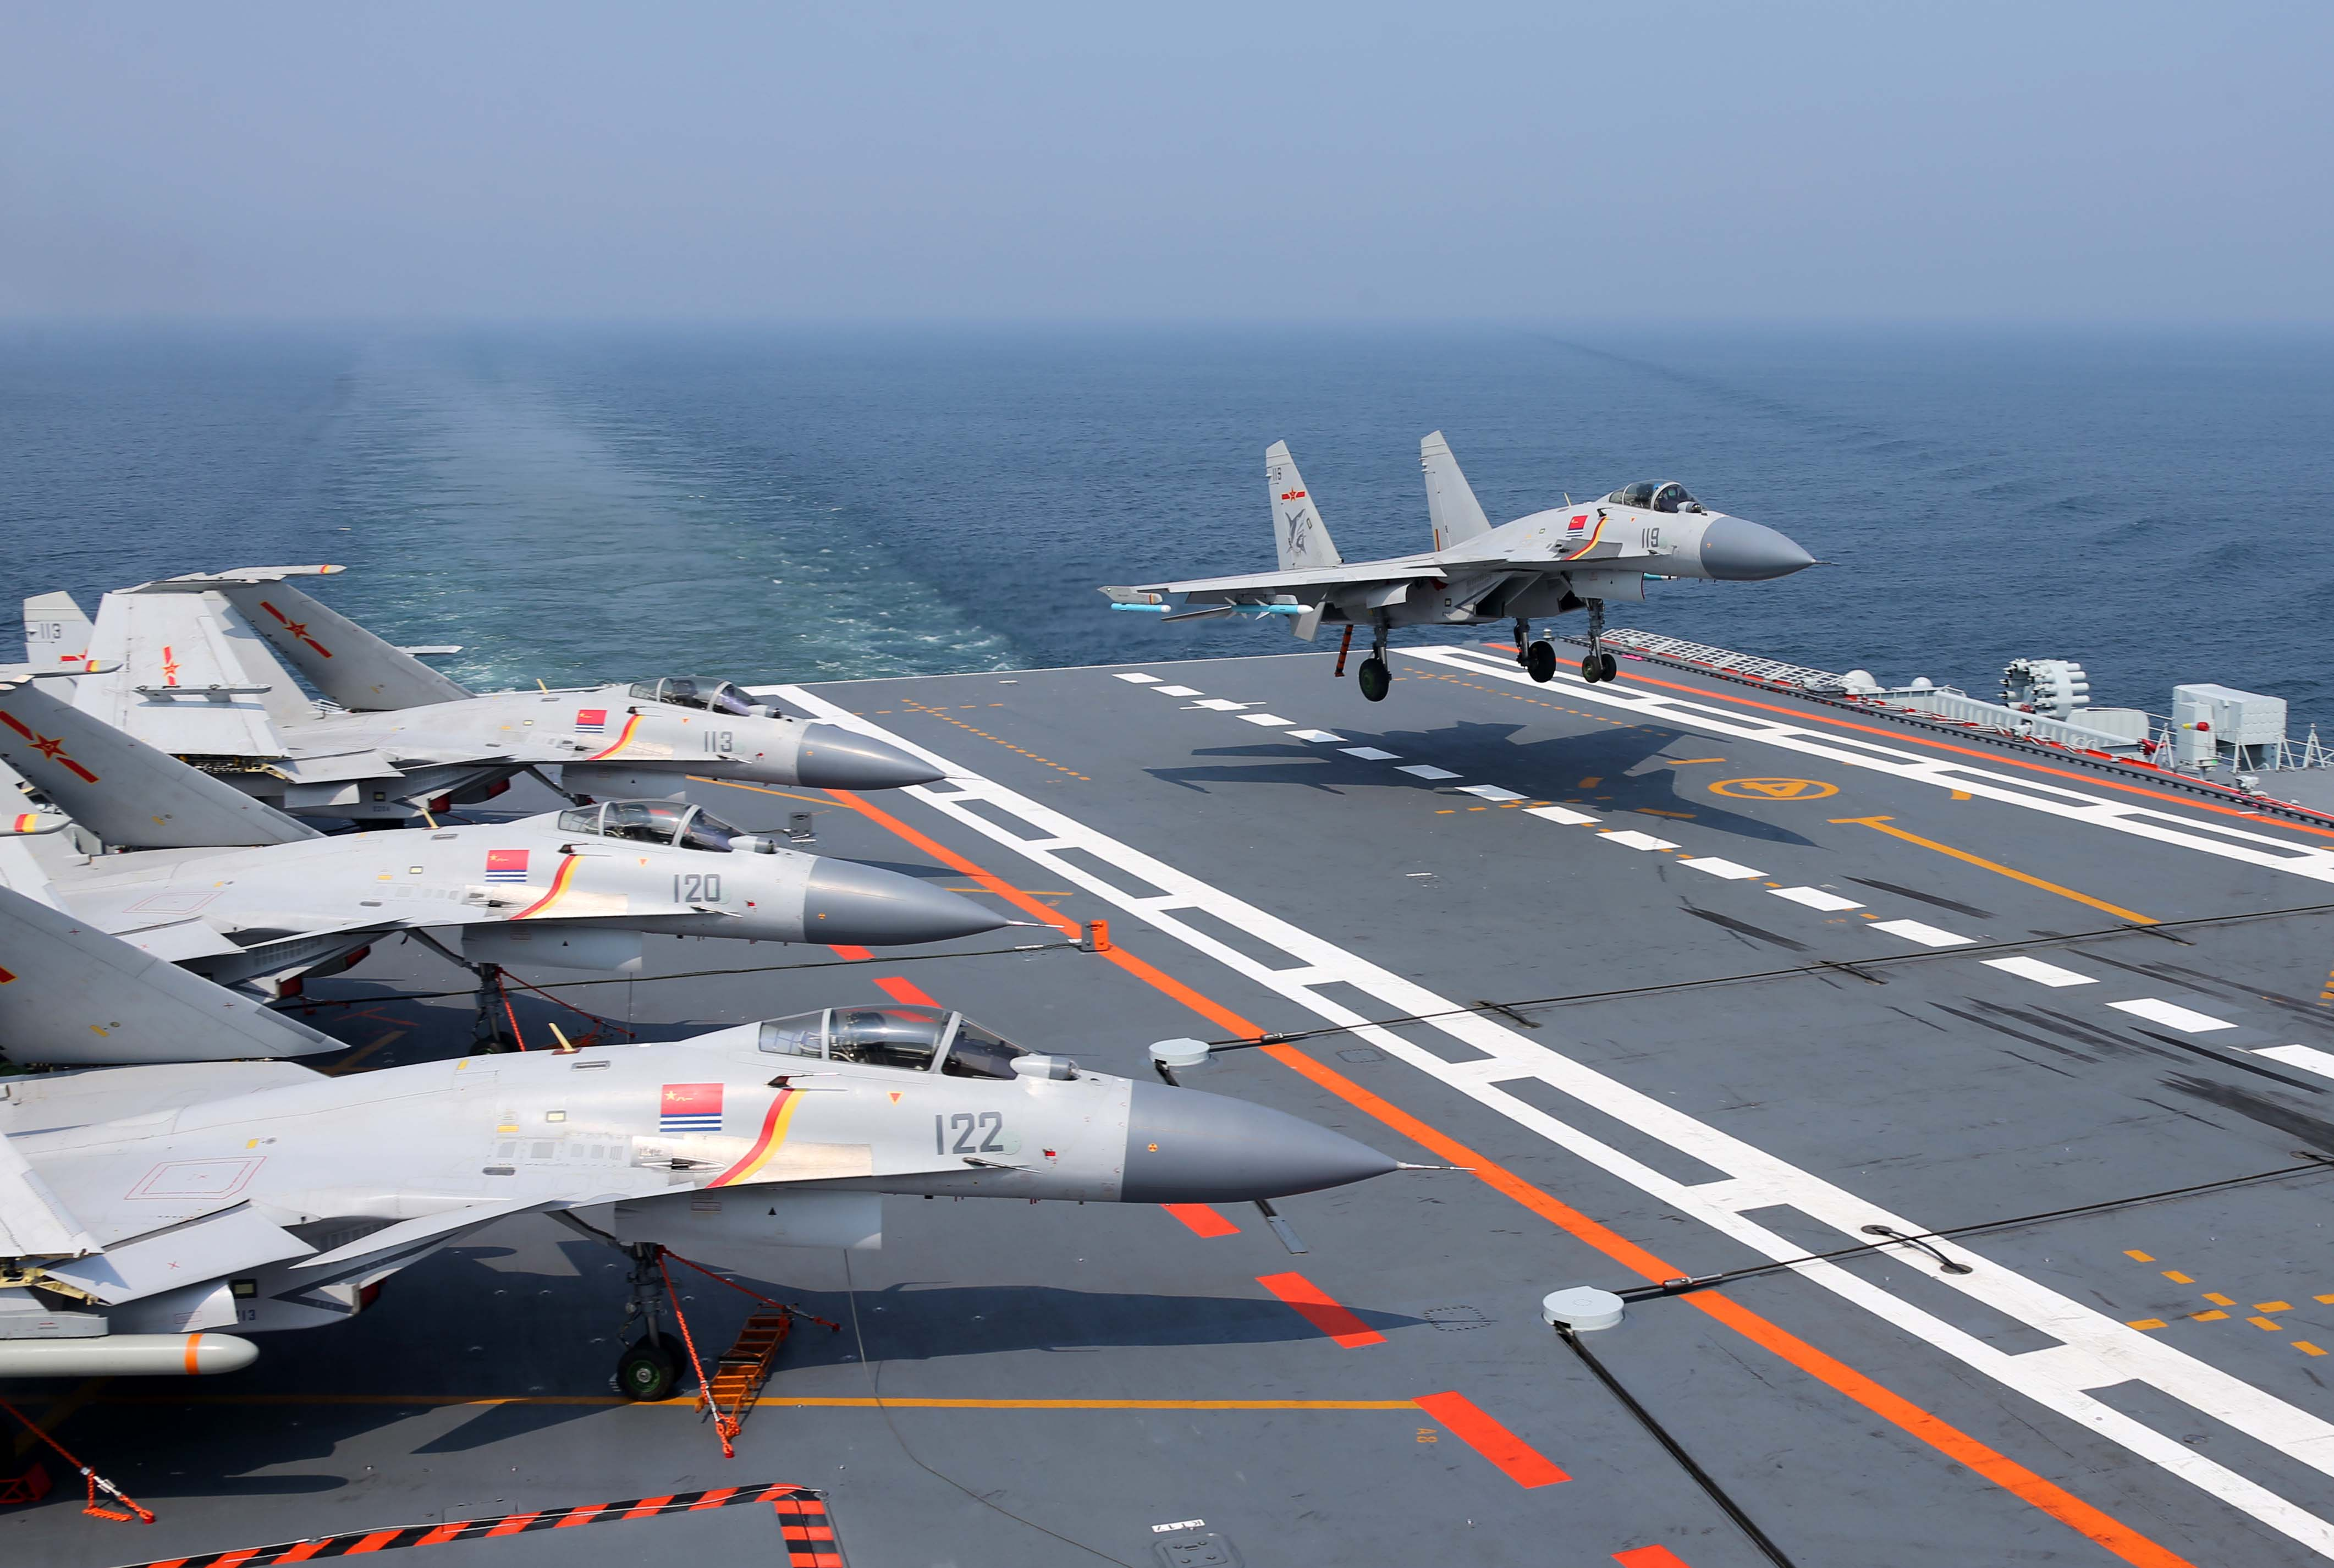 http://www.naval.com.br/blog/wp-content/uploads/2017/07/liaoning-11.jpg